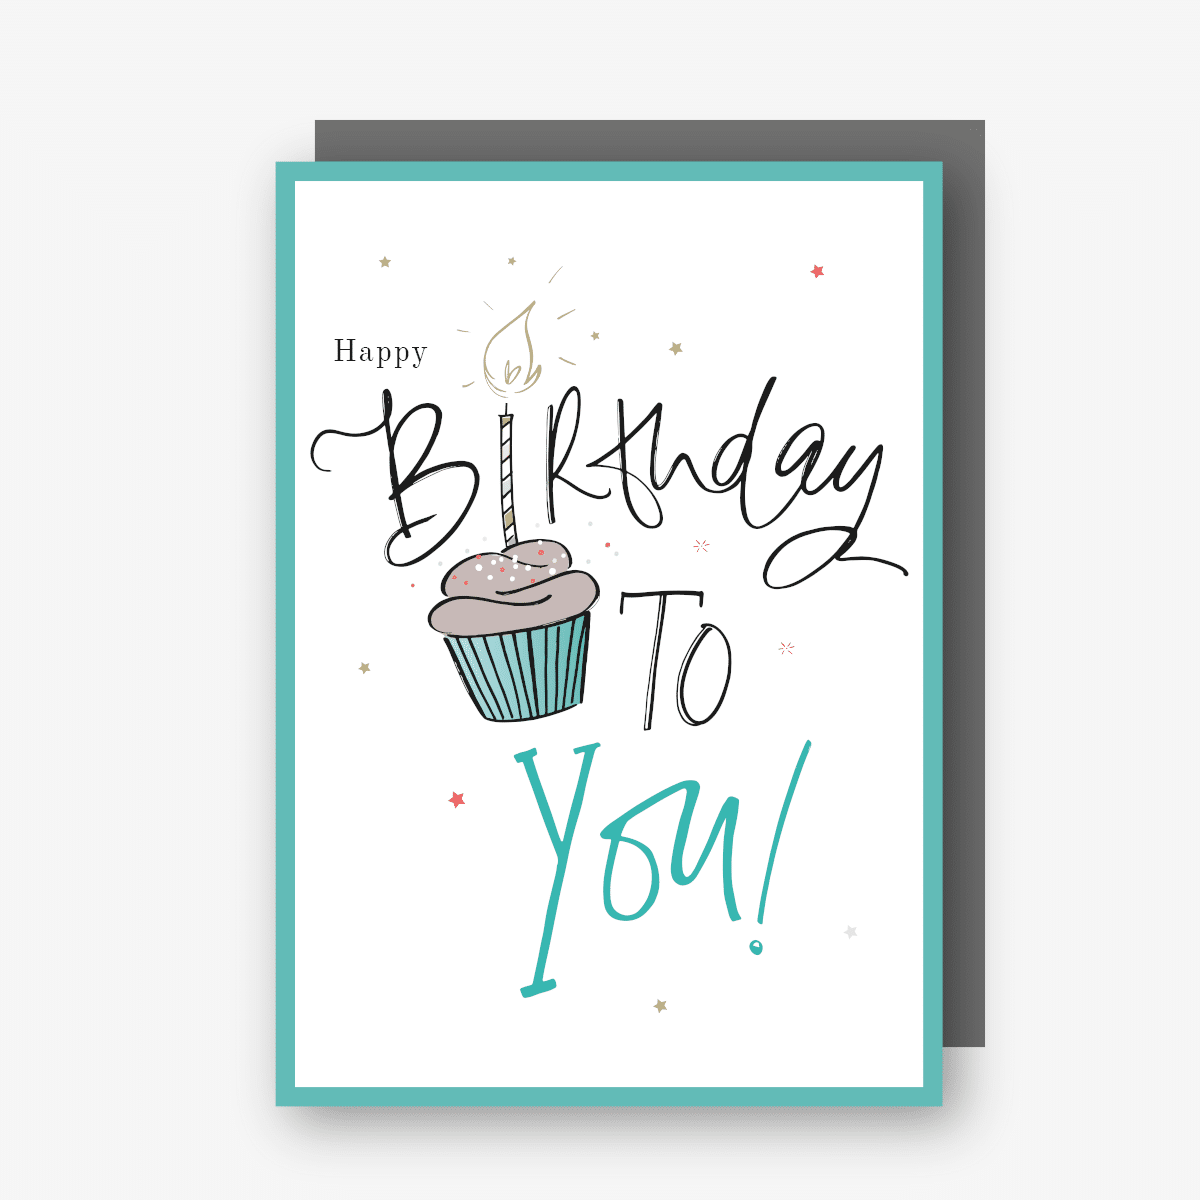 Happy Birthday To You Card (Green)